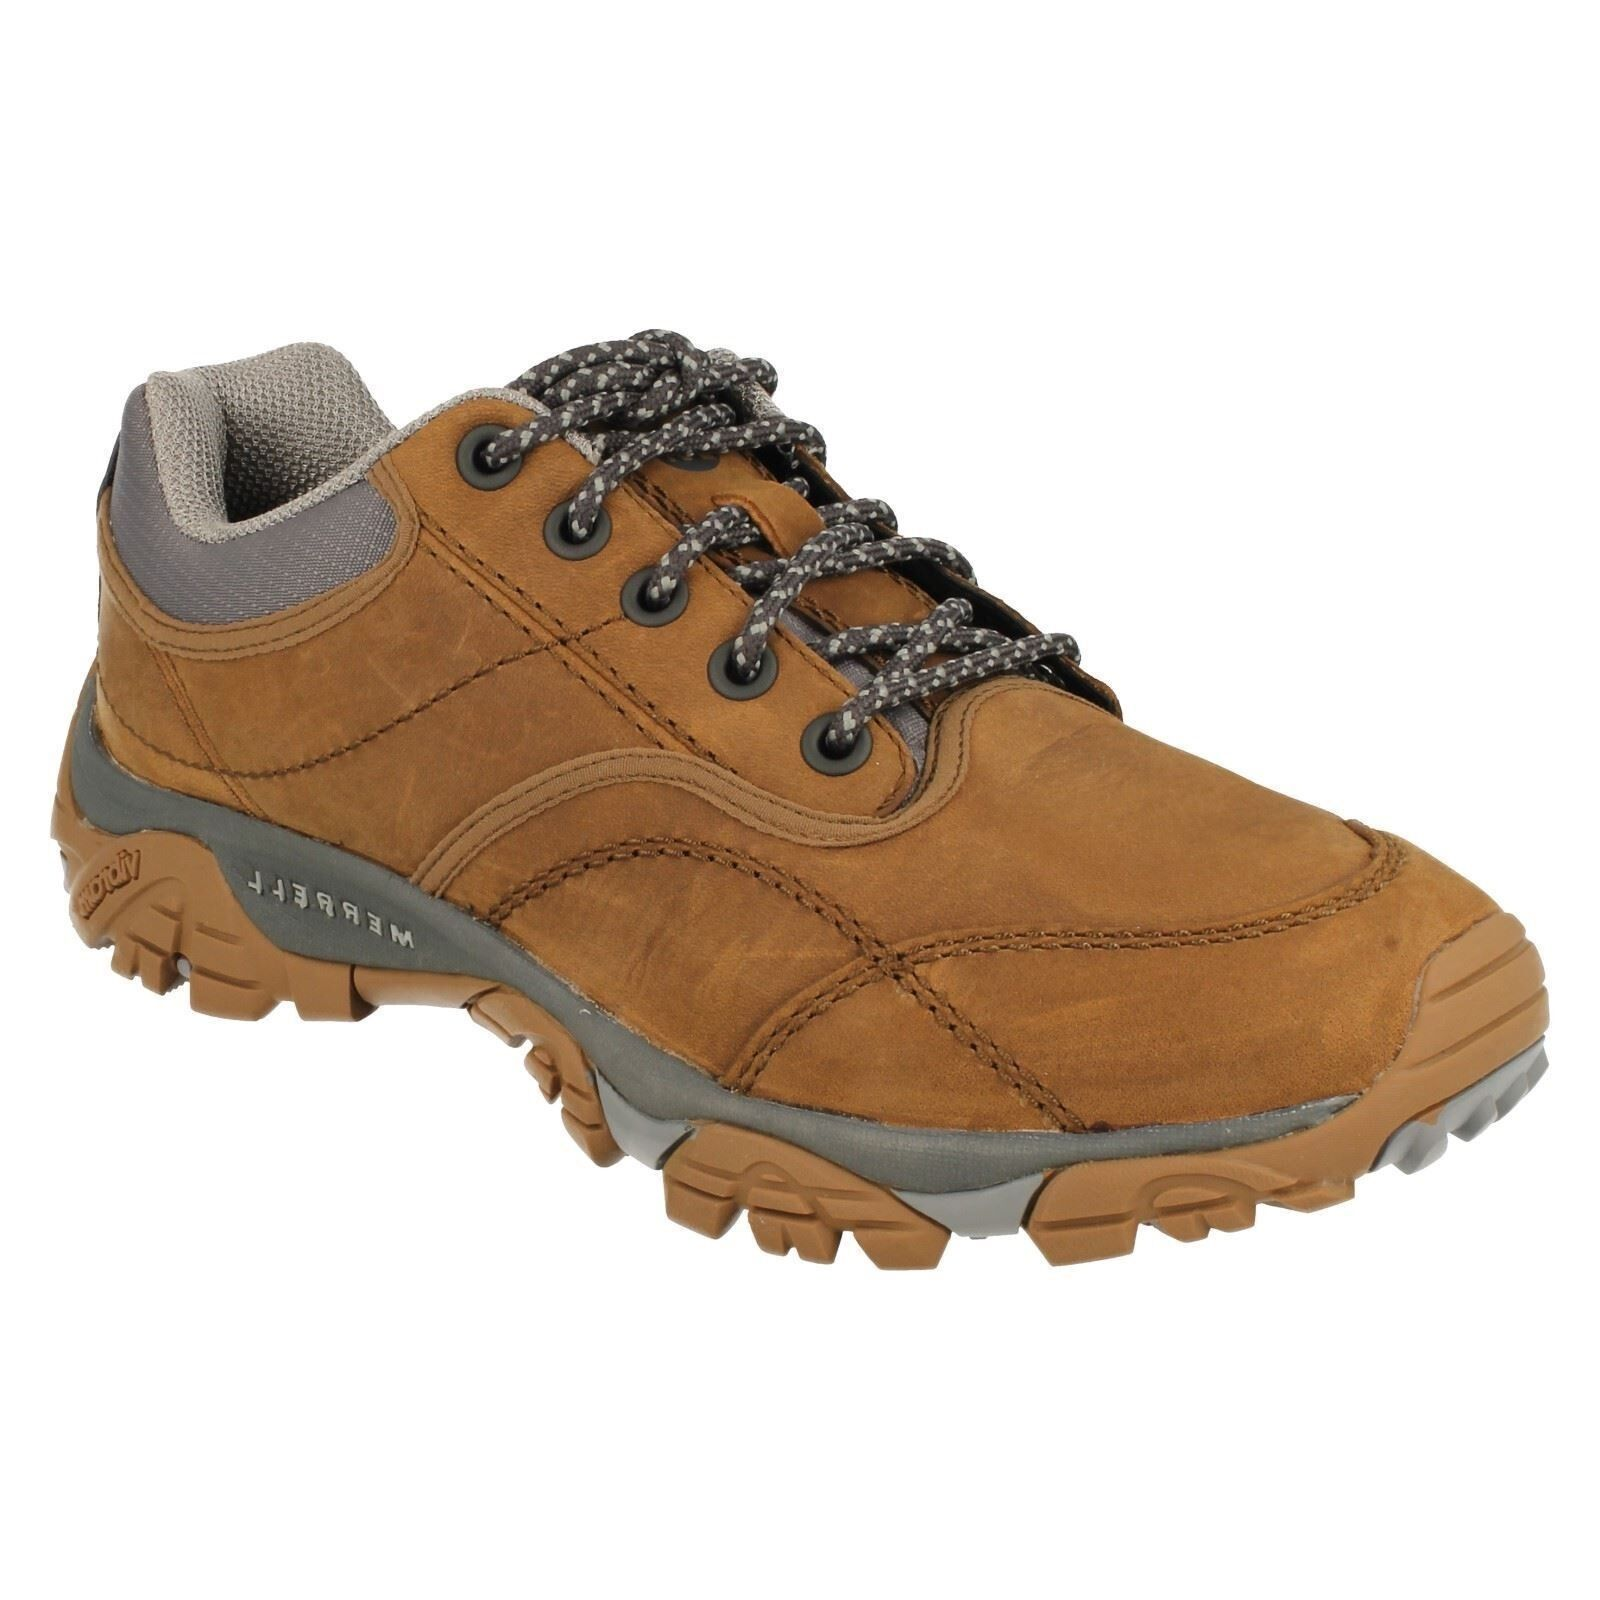 hommes MERRELL LACE UP BROWN LEATHER WALKING HIKING CASUAL Chaussures MOAB ROVER